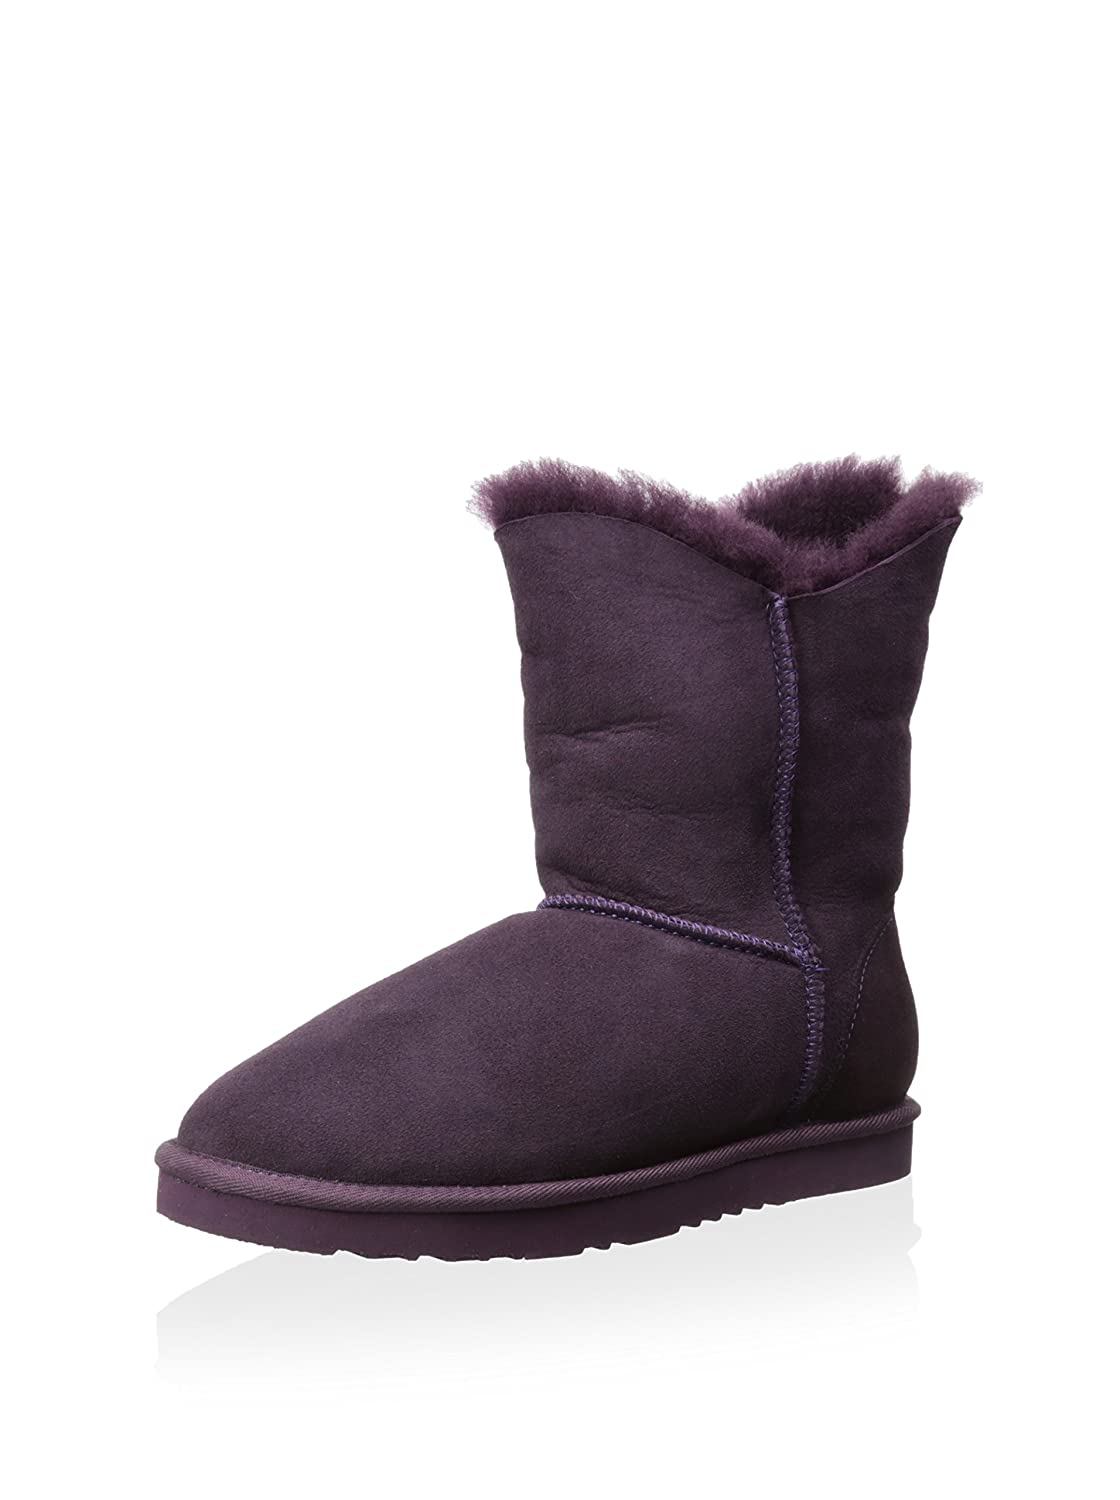 Koolaburra Women's Double Halo Short Snow Boot B00MTGJTF0 9 B(M) US|Purple